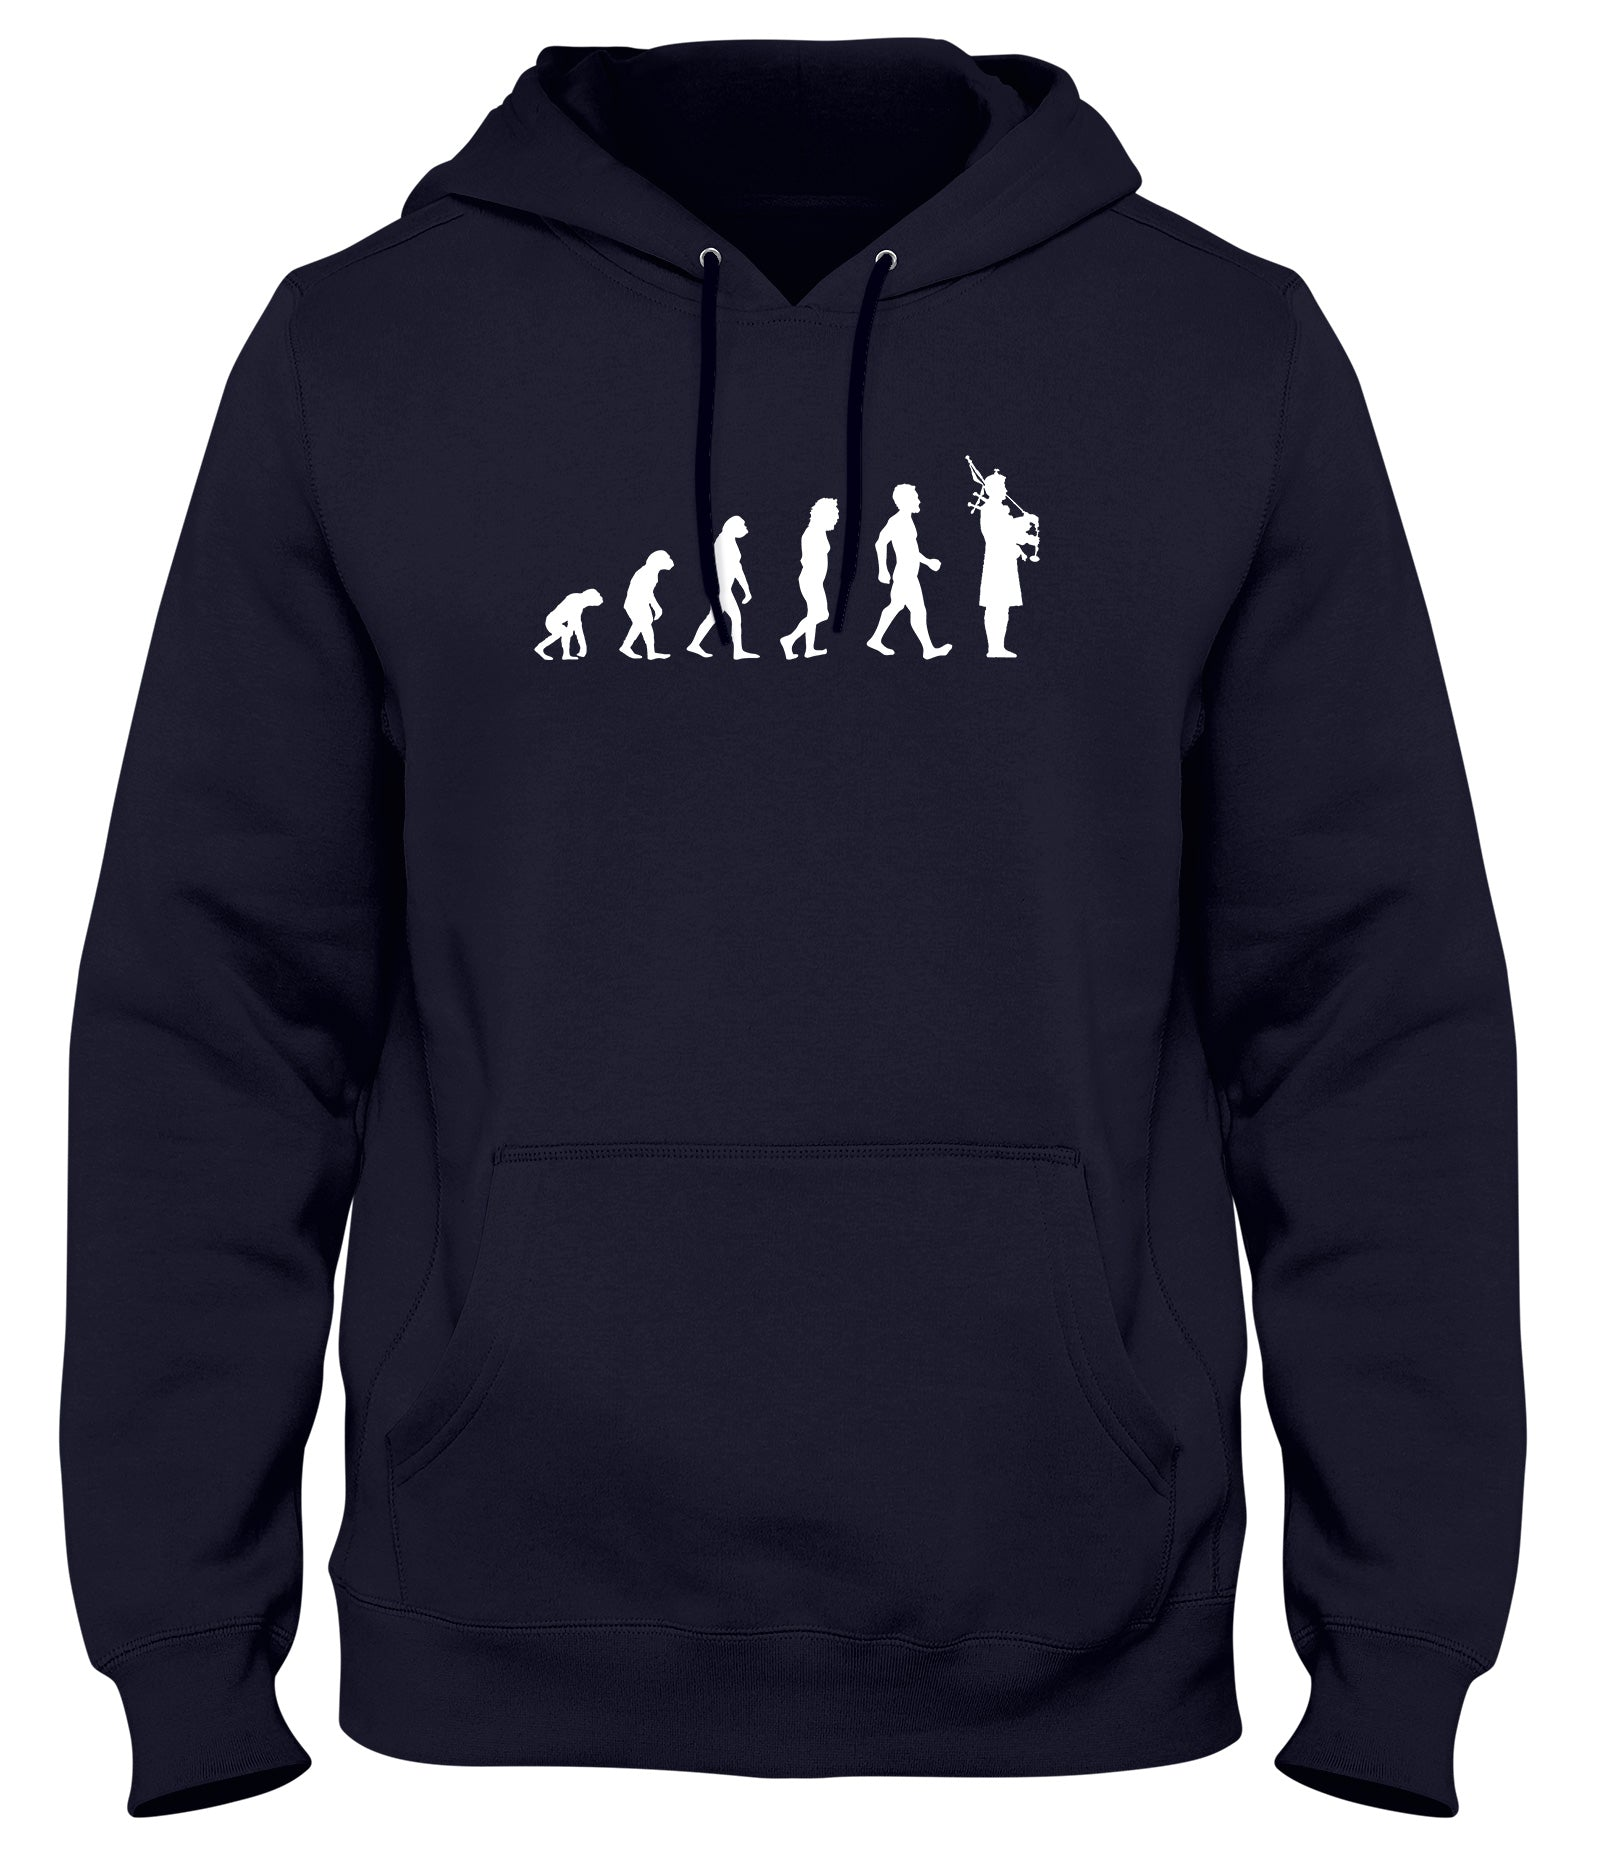 EVOLUTION OF BAGPIPES BAGPIPER MAN MENS WOMENS LADIES UNISEX FUNNY SLOGAN HOODIE